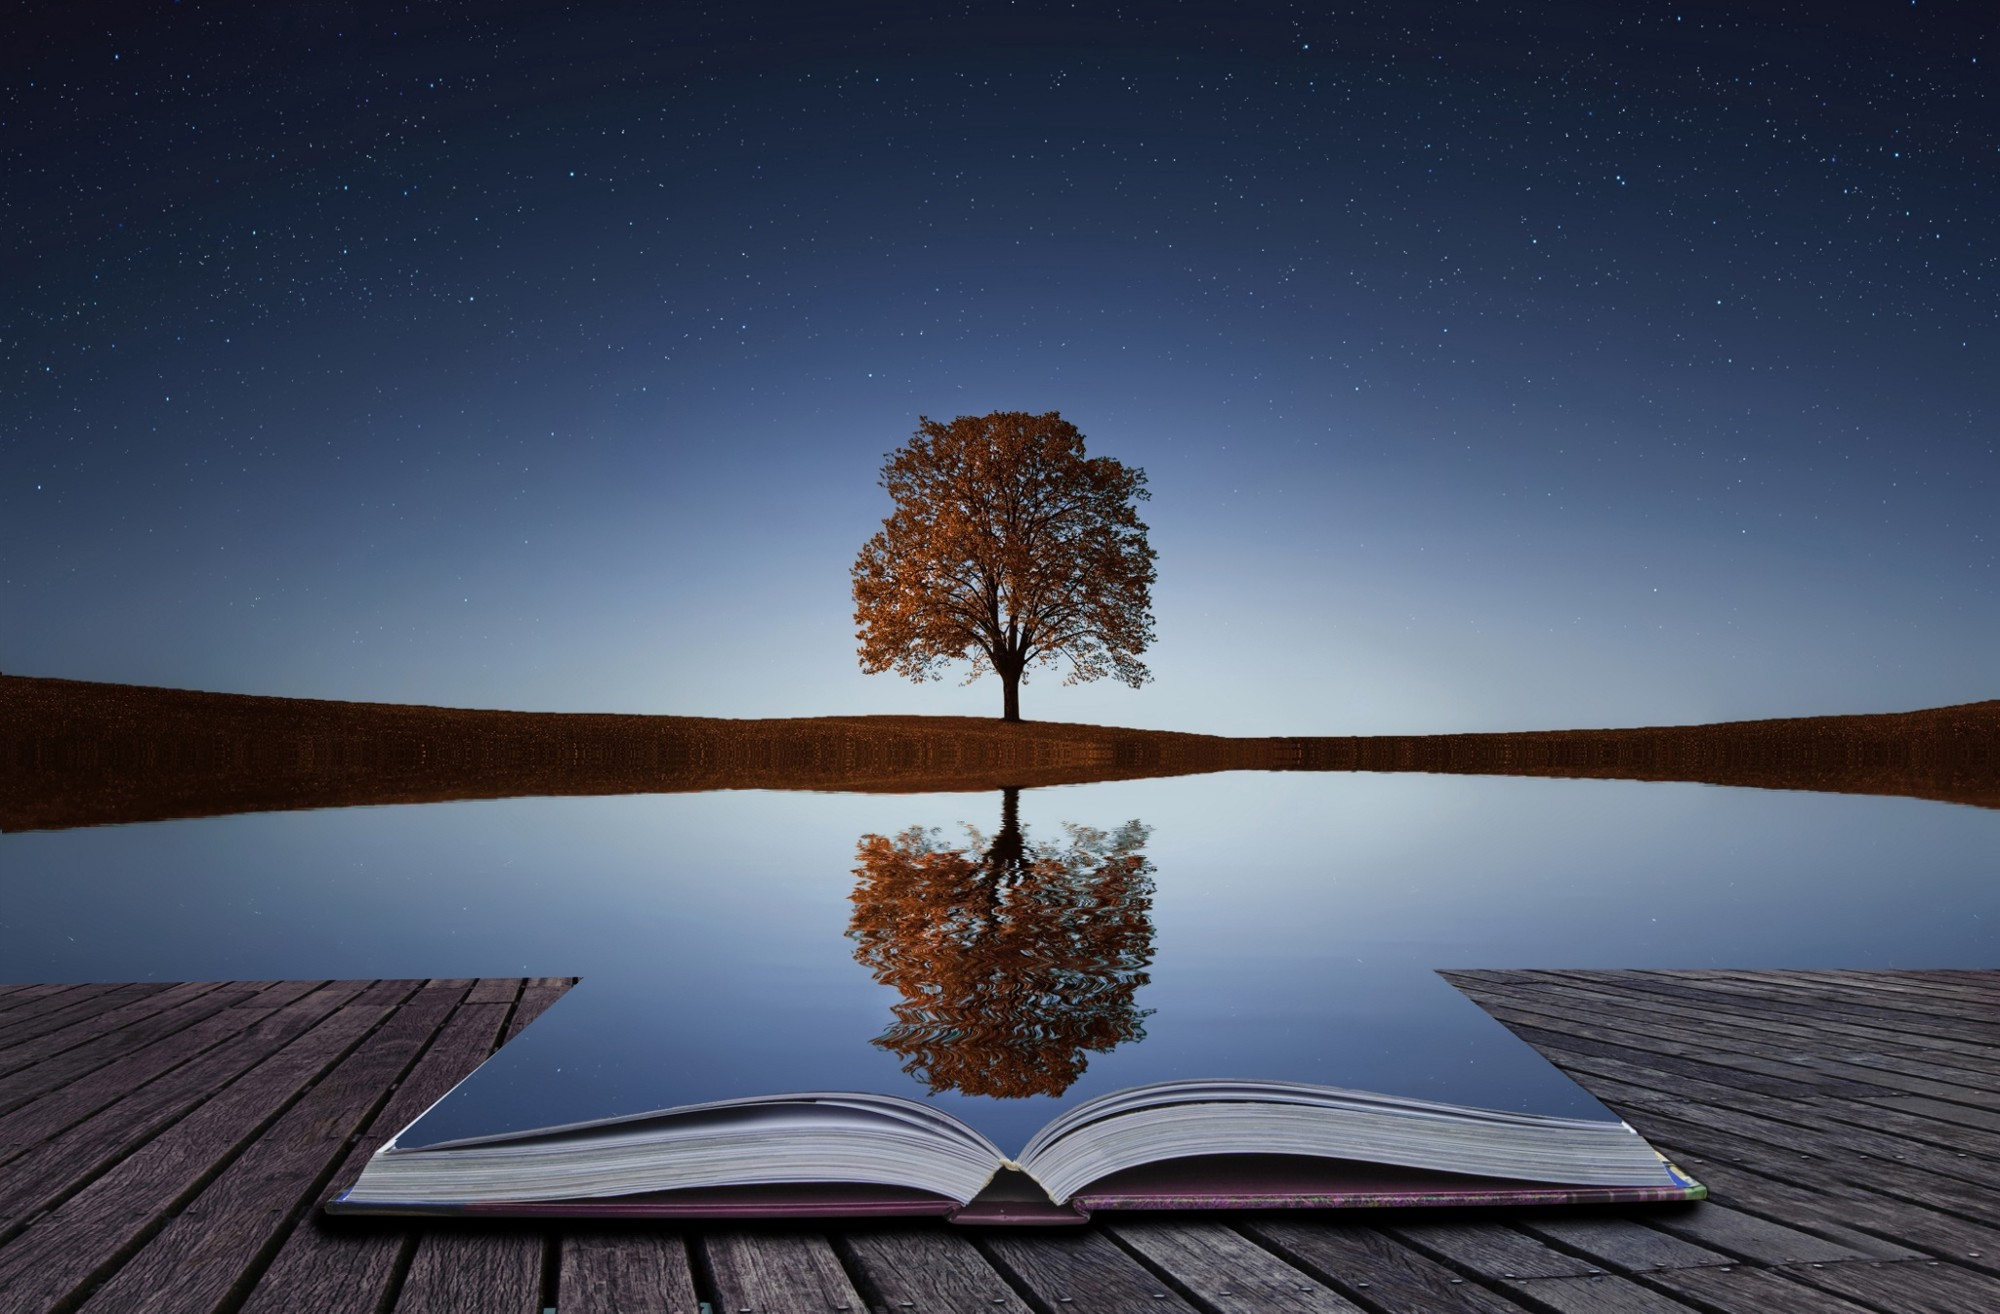 Image of a tree reflection on a smooth surface